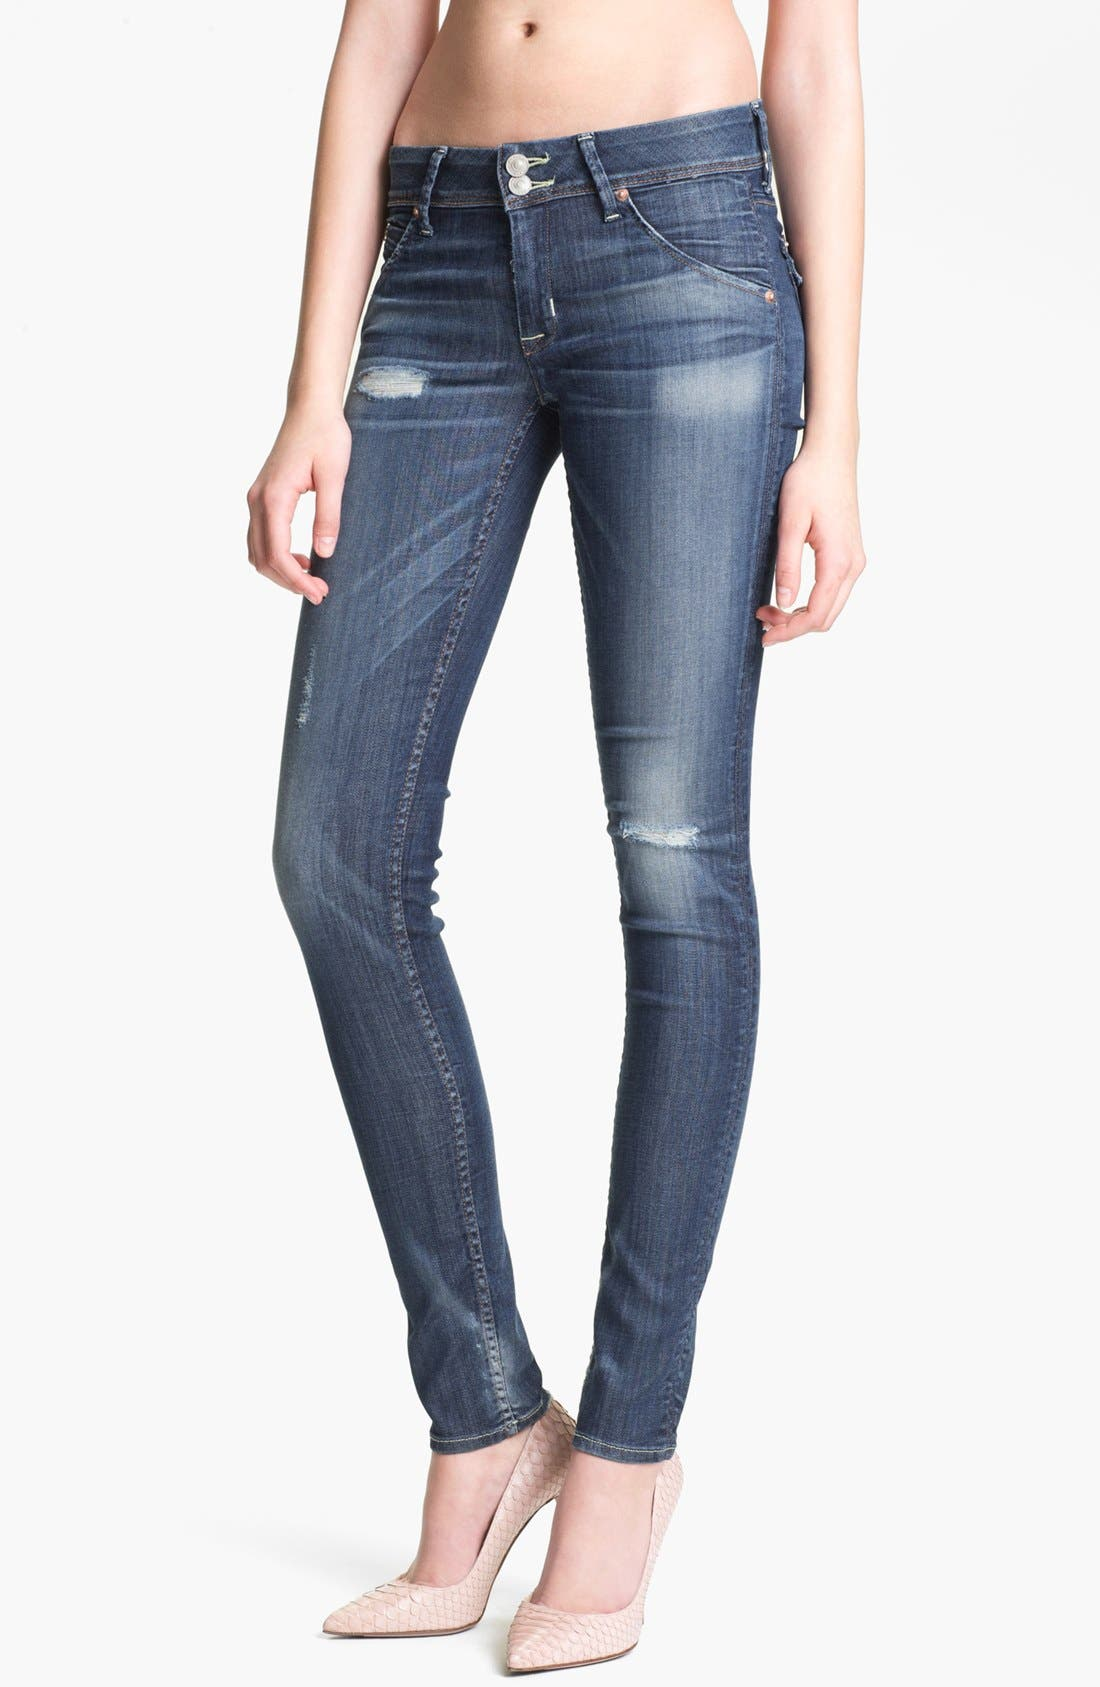 Main Image - Hudson Jeans 'Collin' Distressed Skinny Stretch Jeans (Youth Vintage)